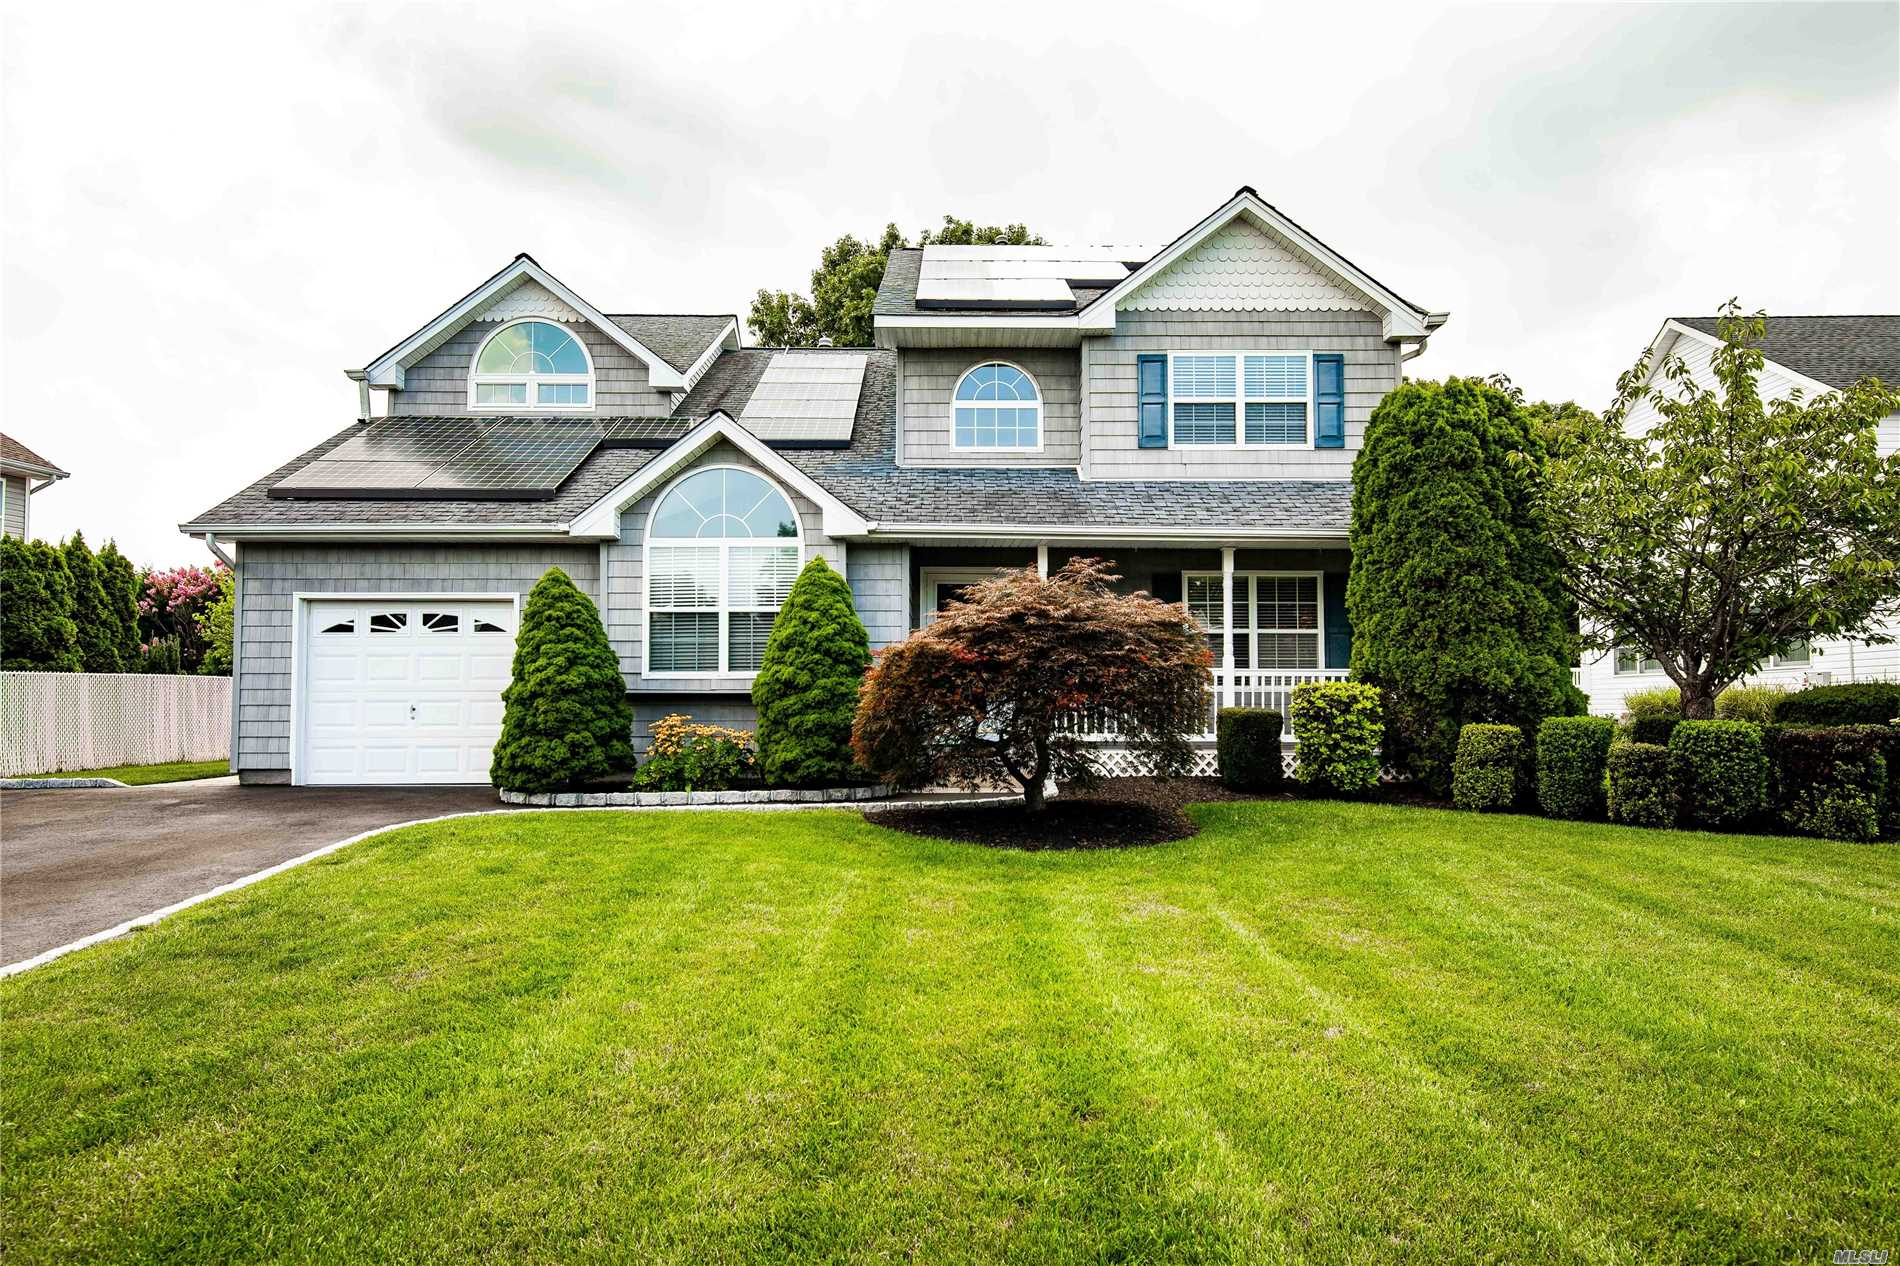 A Picture Perfect Location! Welcome To This Lovely 4 Bedroom, 2.5 Bath Home On A Quiet Cul-De-Sac In The Desirable Country Estates Neighborhood. Home Features A Spacious Kitchen, Hardwood Floors, Central-Air Conditioning, Solar Energy And Large Manicured Property. Commack School District Private Viewings